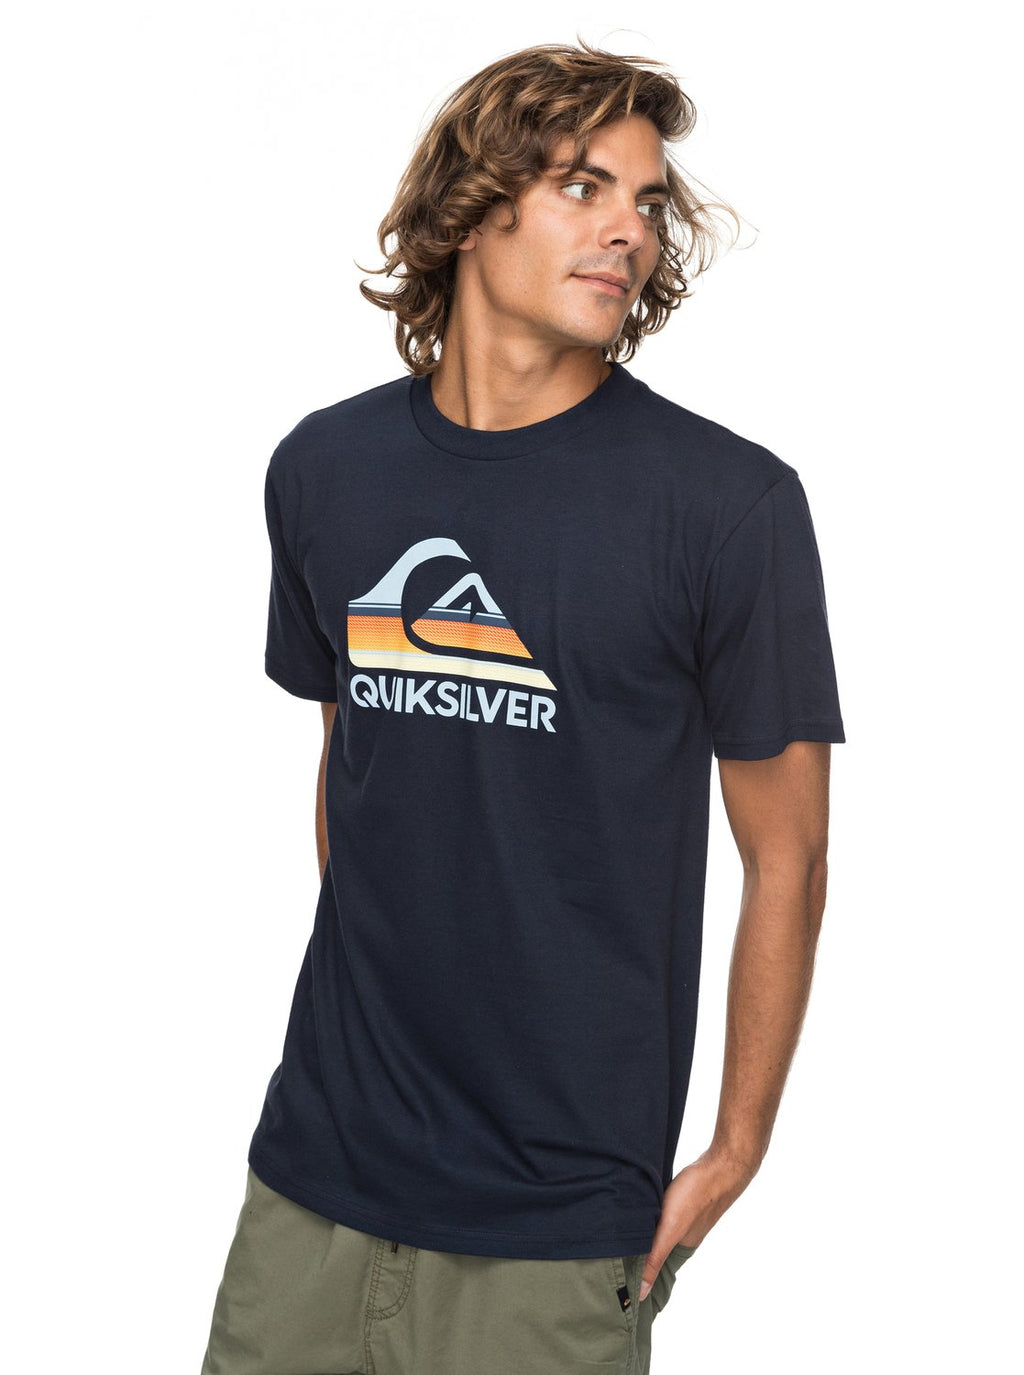 Waves Ahead Tee - Men's